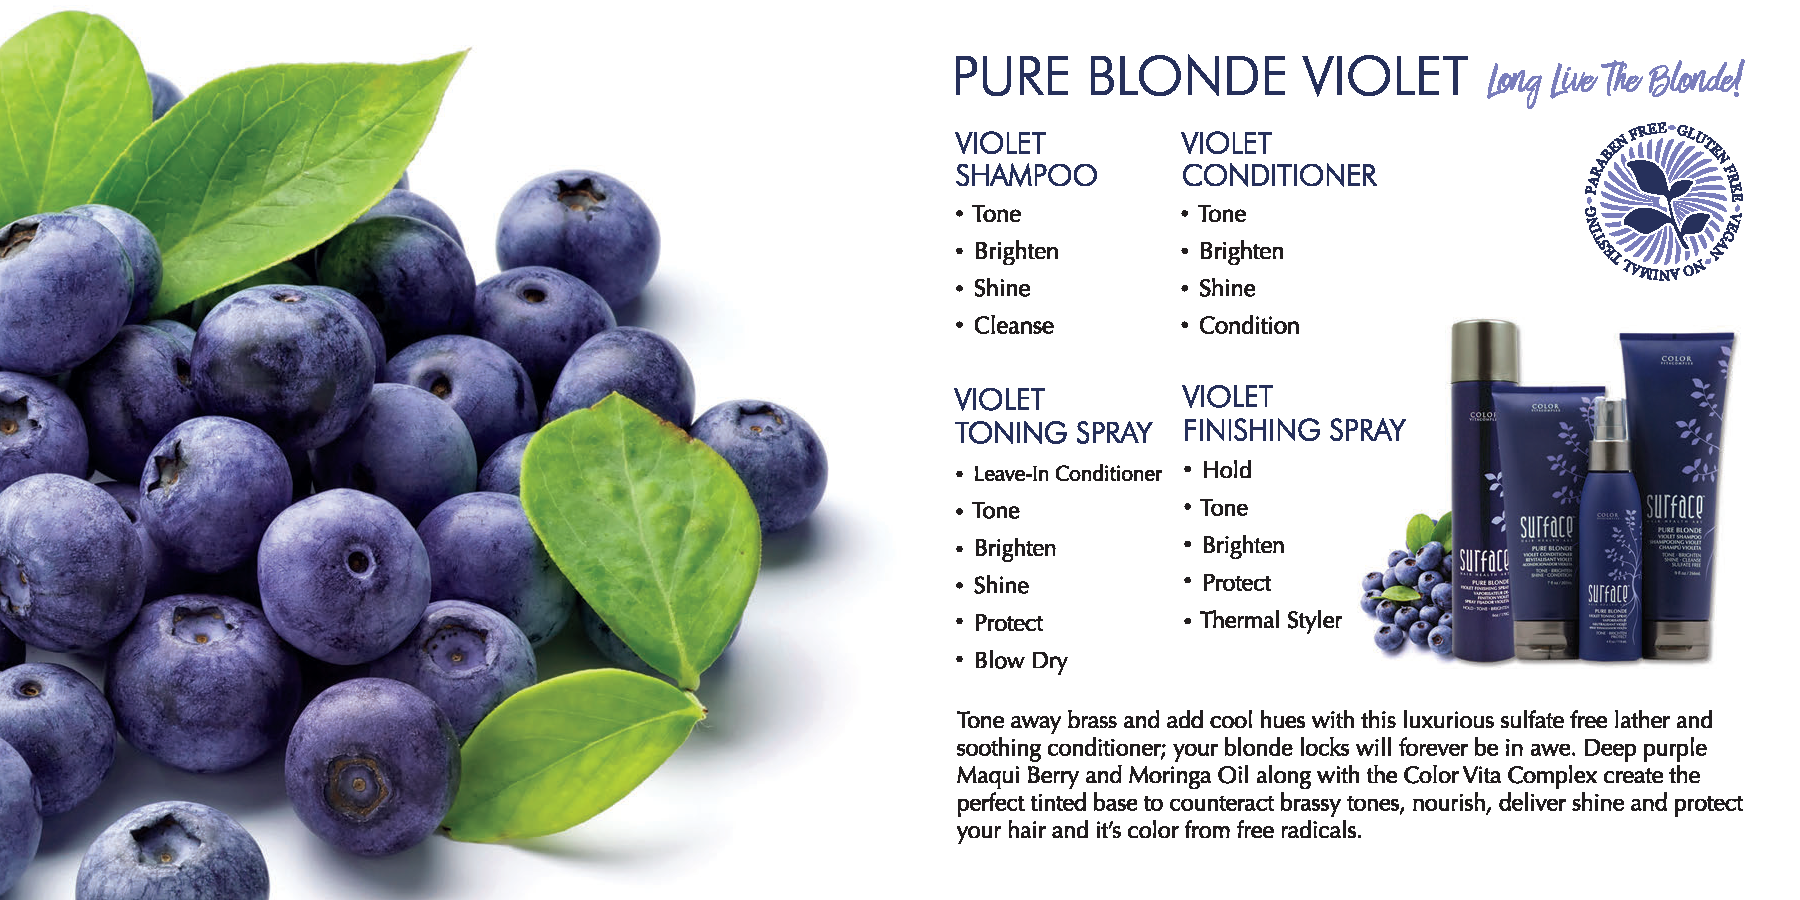 Surface Pure Blonde Violet Haircare Products